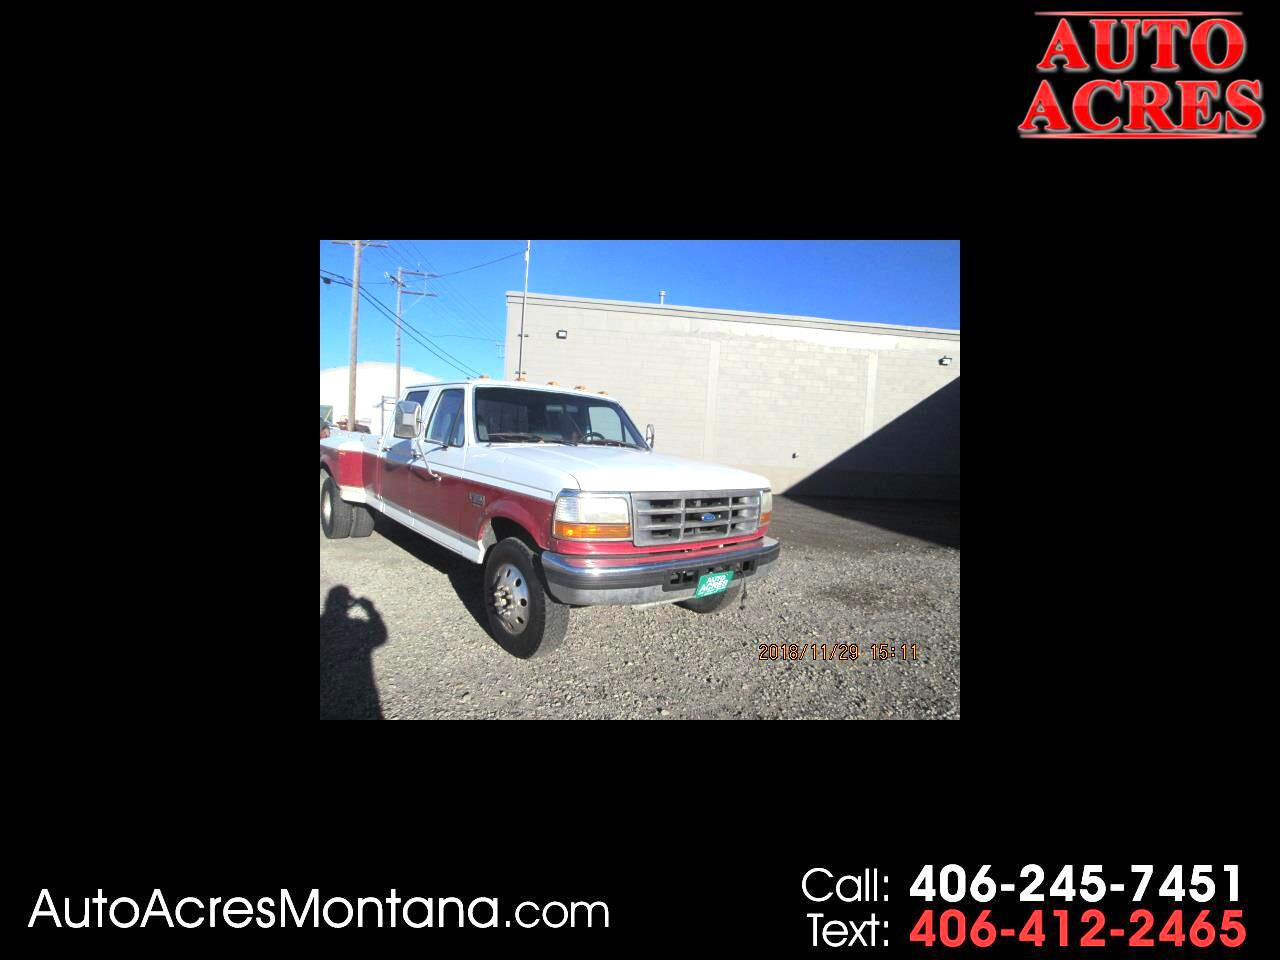 1994 Ford F-350 Crew Cab 4dr 168